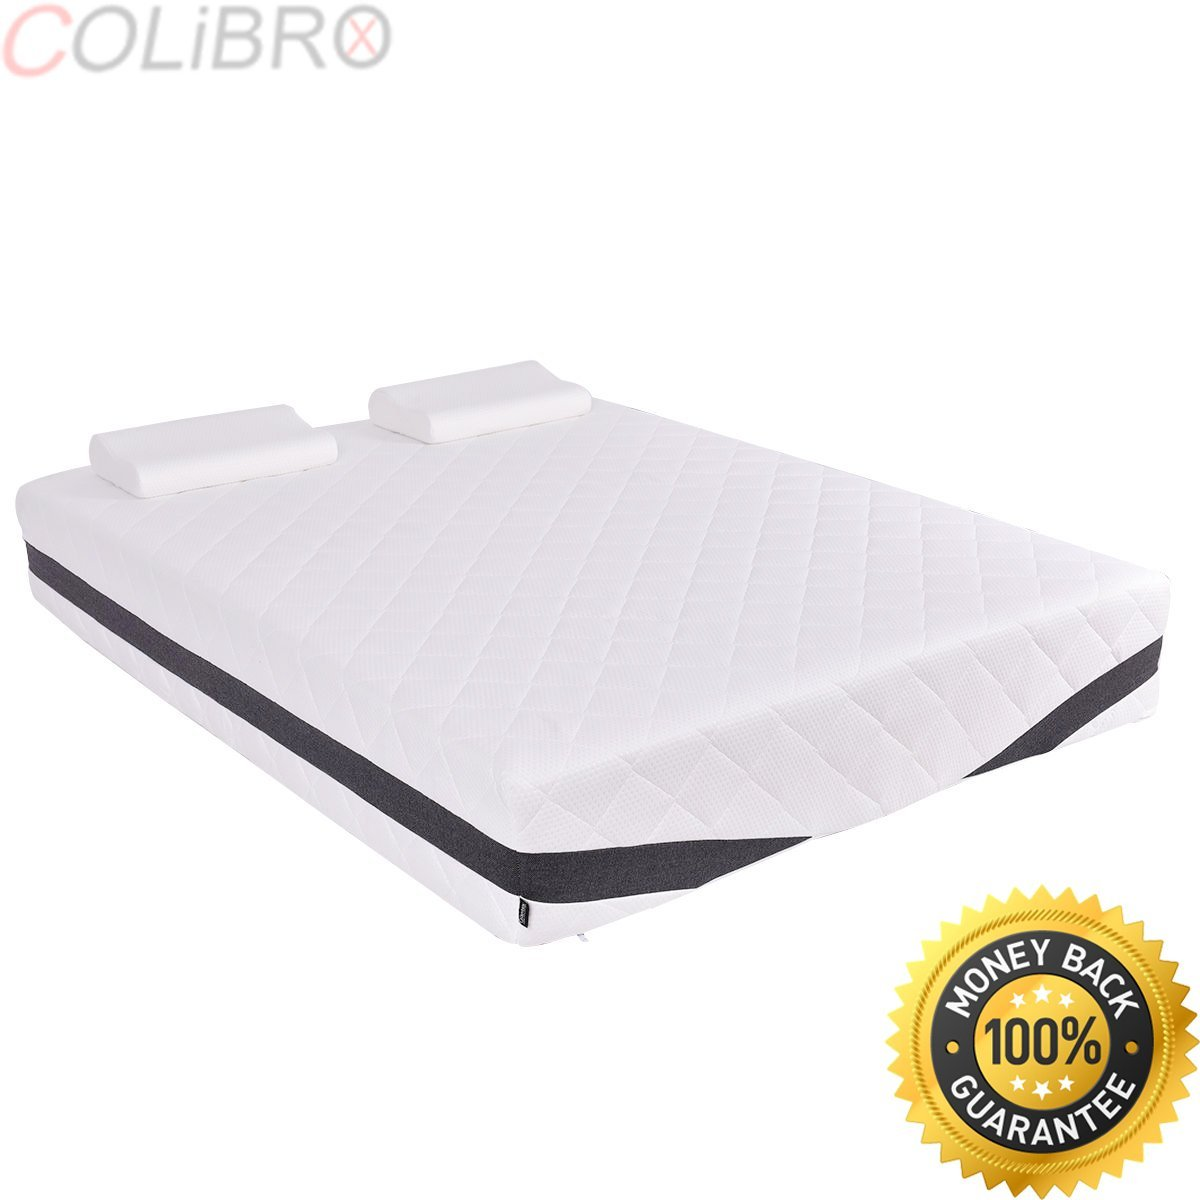 Brilliant Cheap Sofa Bed Topper Queen Find Sofa Bed Topper Queen Home Interior And Landscaping Elinuenasavecom